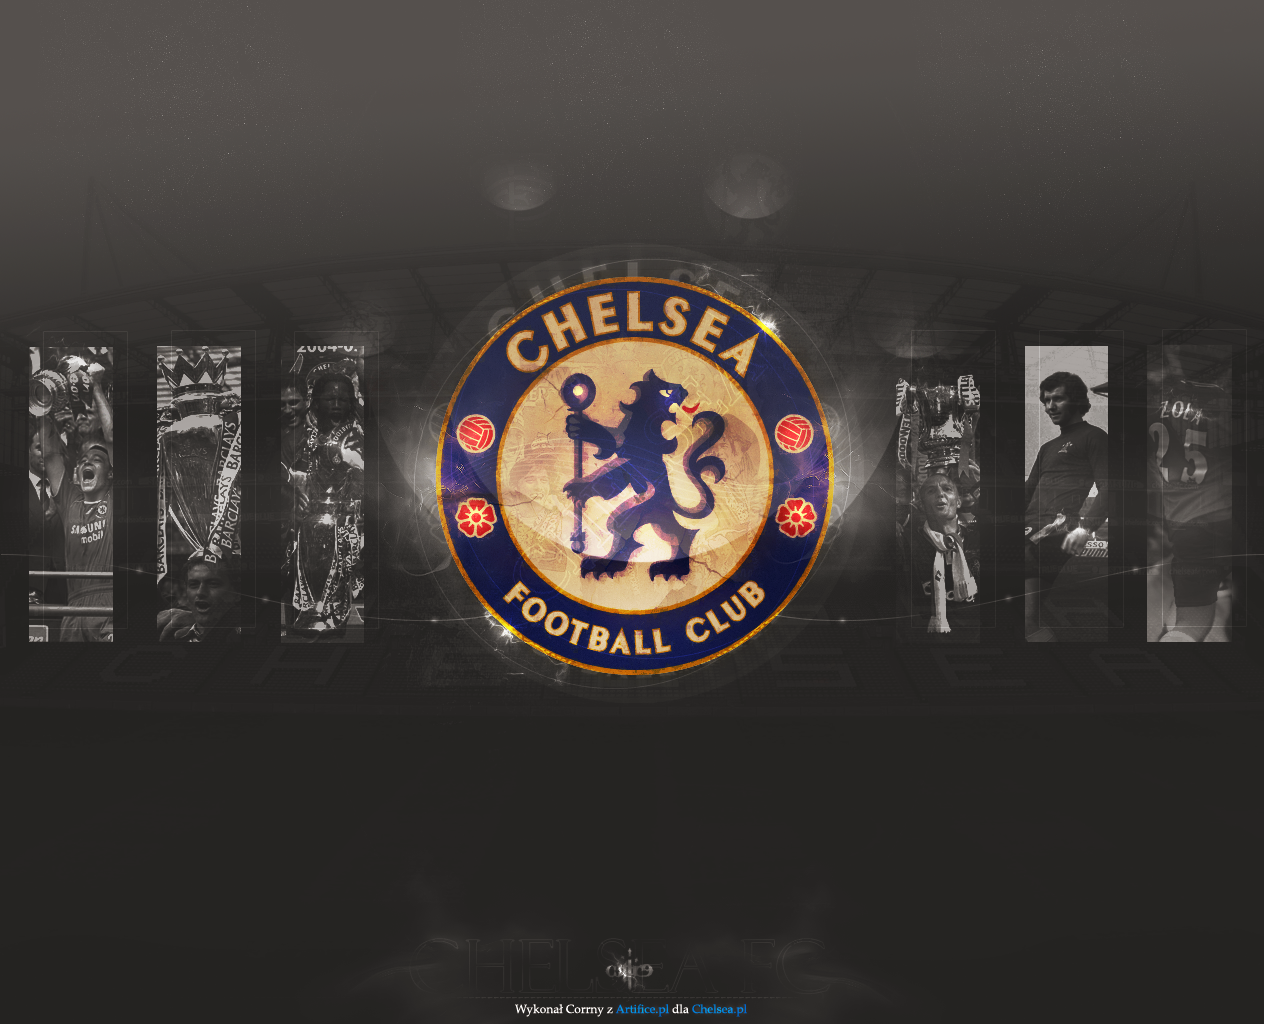 http://3.bp.blogspot.com/-TBY0itopEN8/TWy7Mcr7taI/AAAAAAAAByk/bBb0I3DkP5E/s1600/Chelsea_FC_by_Corrny.png